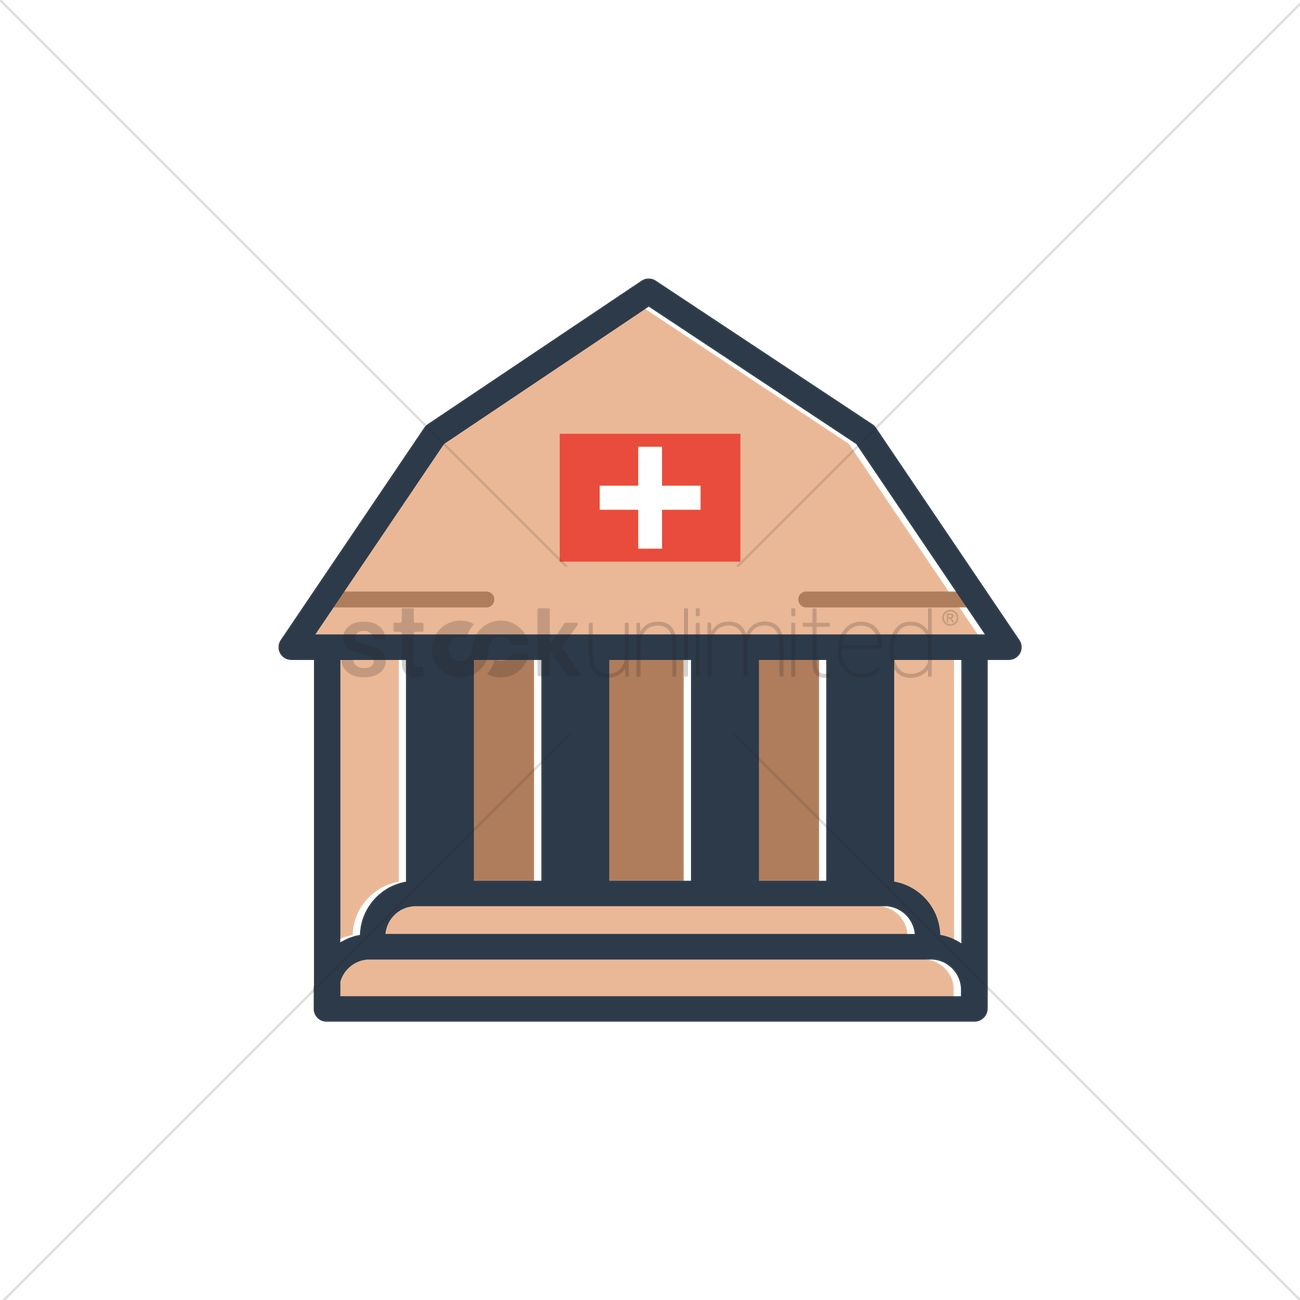 Swiss bank Vector Image - 2024831 | StockUnlimited